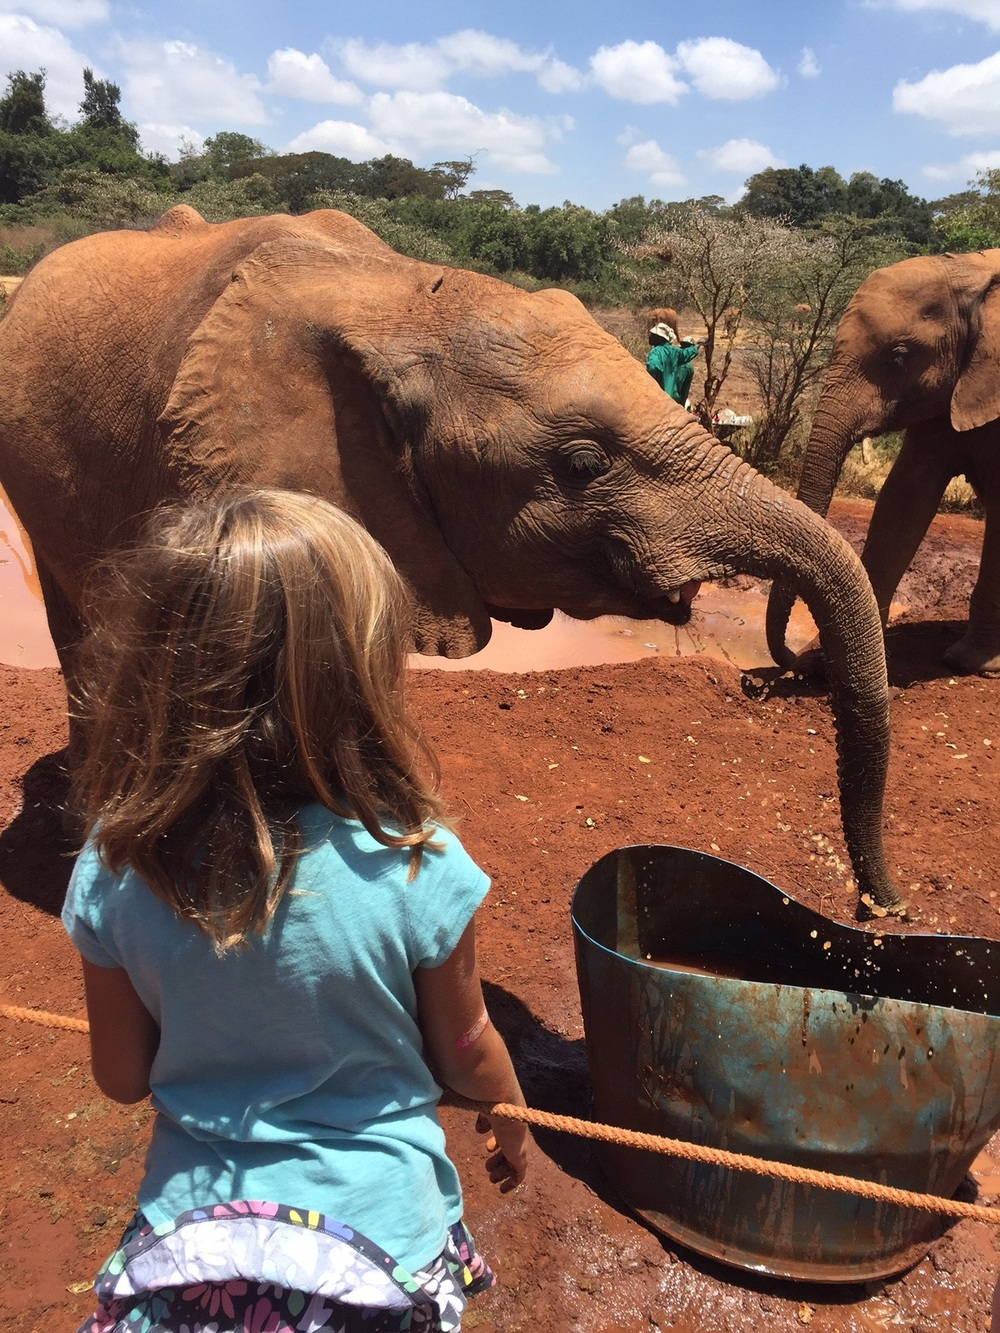 Kenya with Kids: The David Sheldrick Wildlife Trust in Nairobi